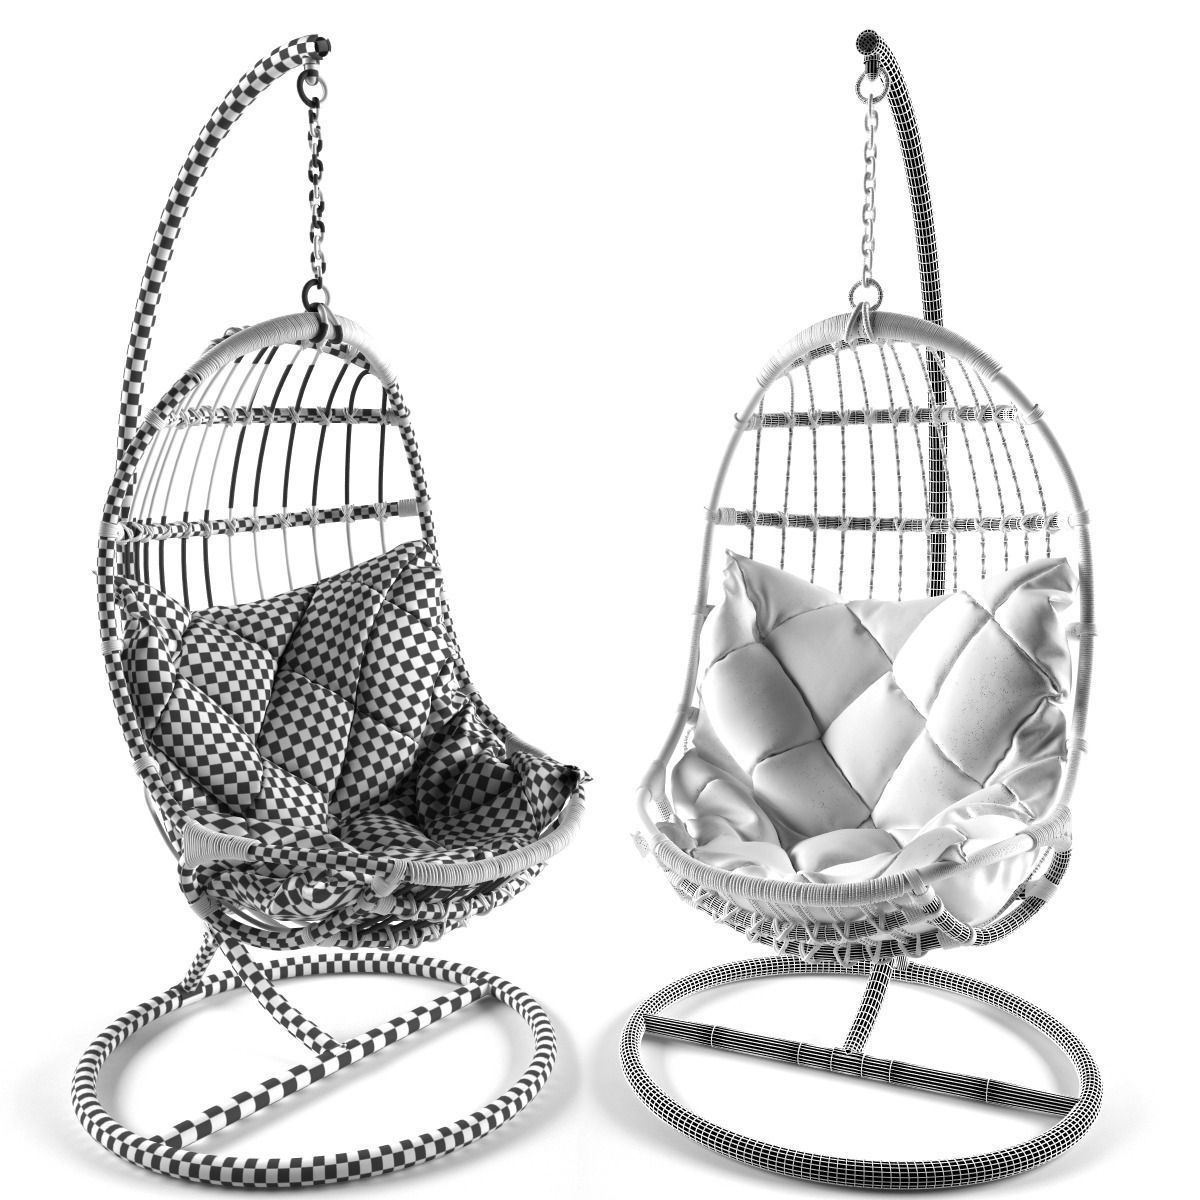 Attractive ... Hanging Chair 3d Model Max Obj 3